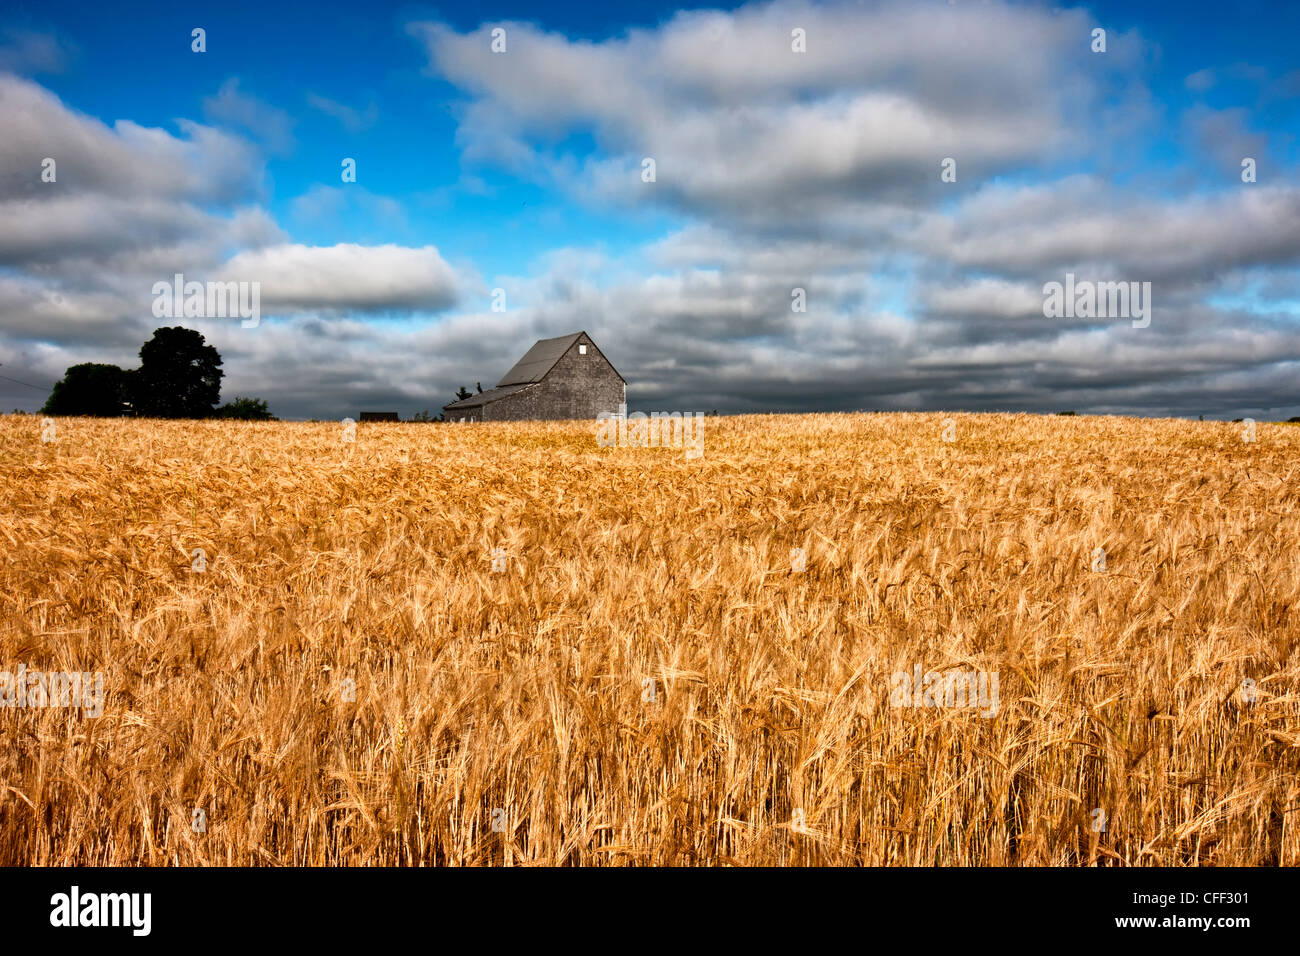 Barn and wheat Field, Guernsey Cove, Prince Edward Island, Canada - Stock Image